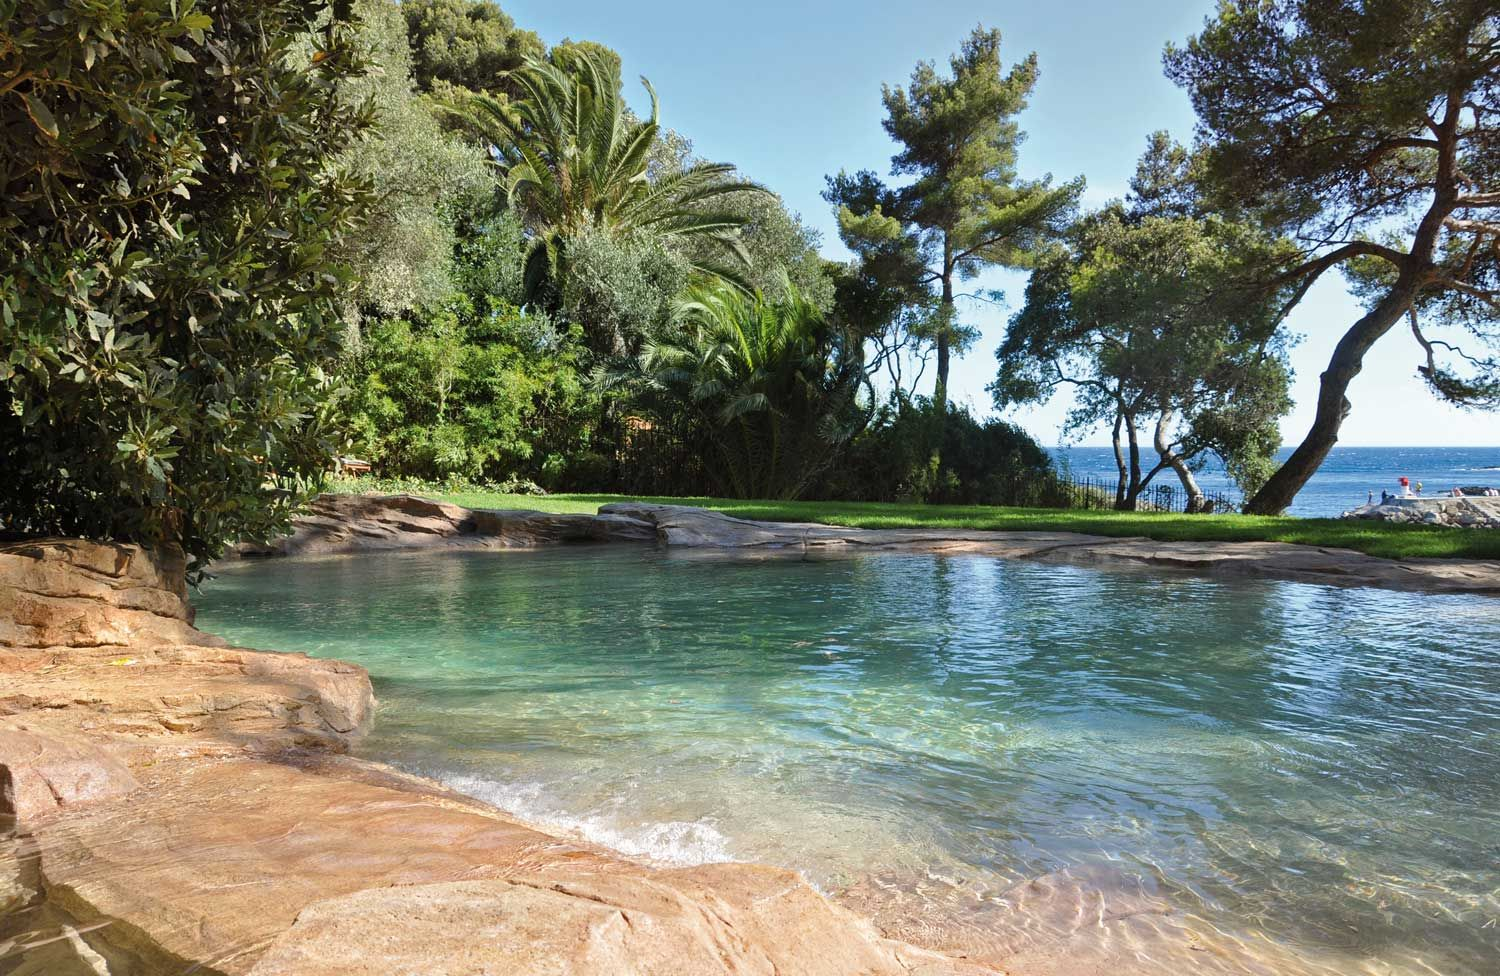 Pics of natural swimming pools yahoo search results for Construction de piscine